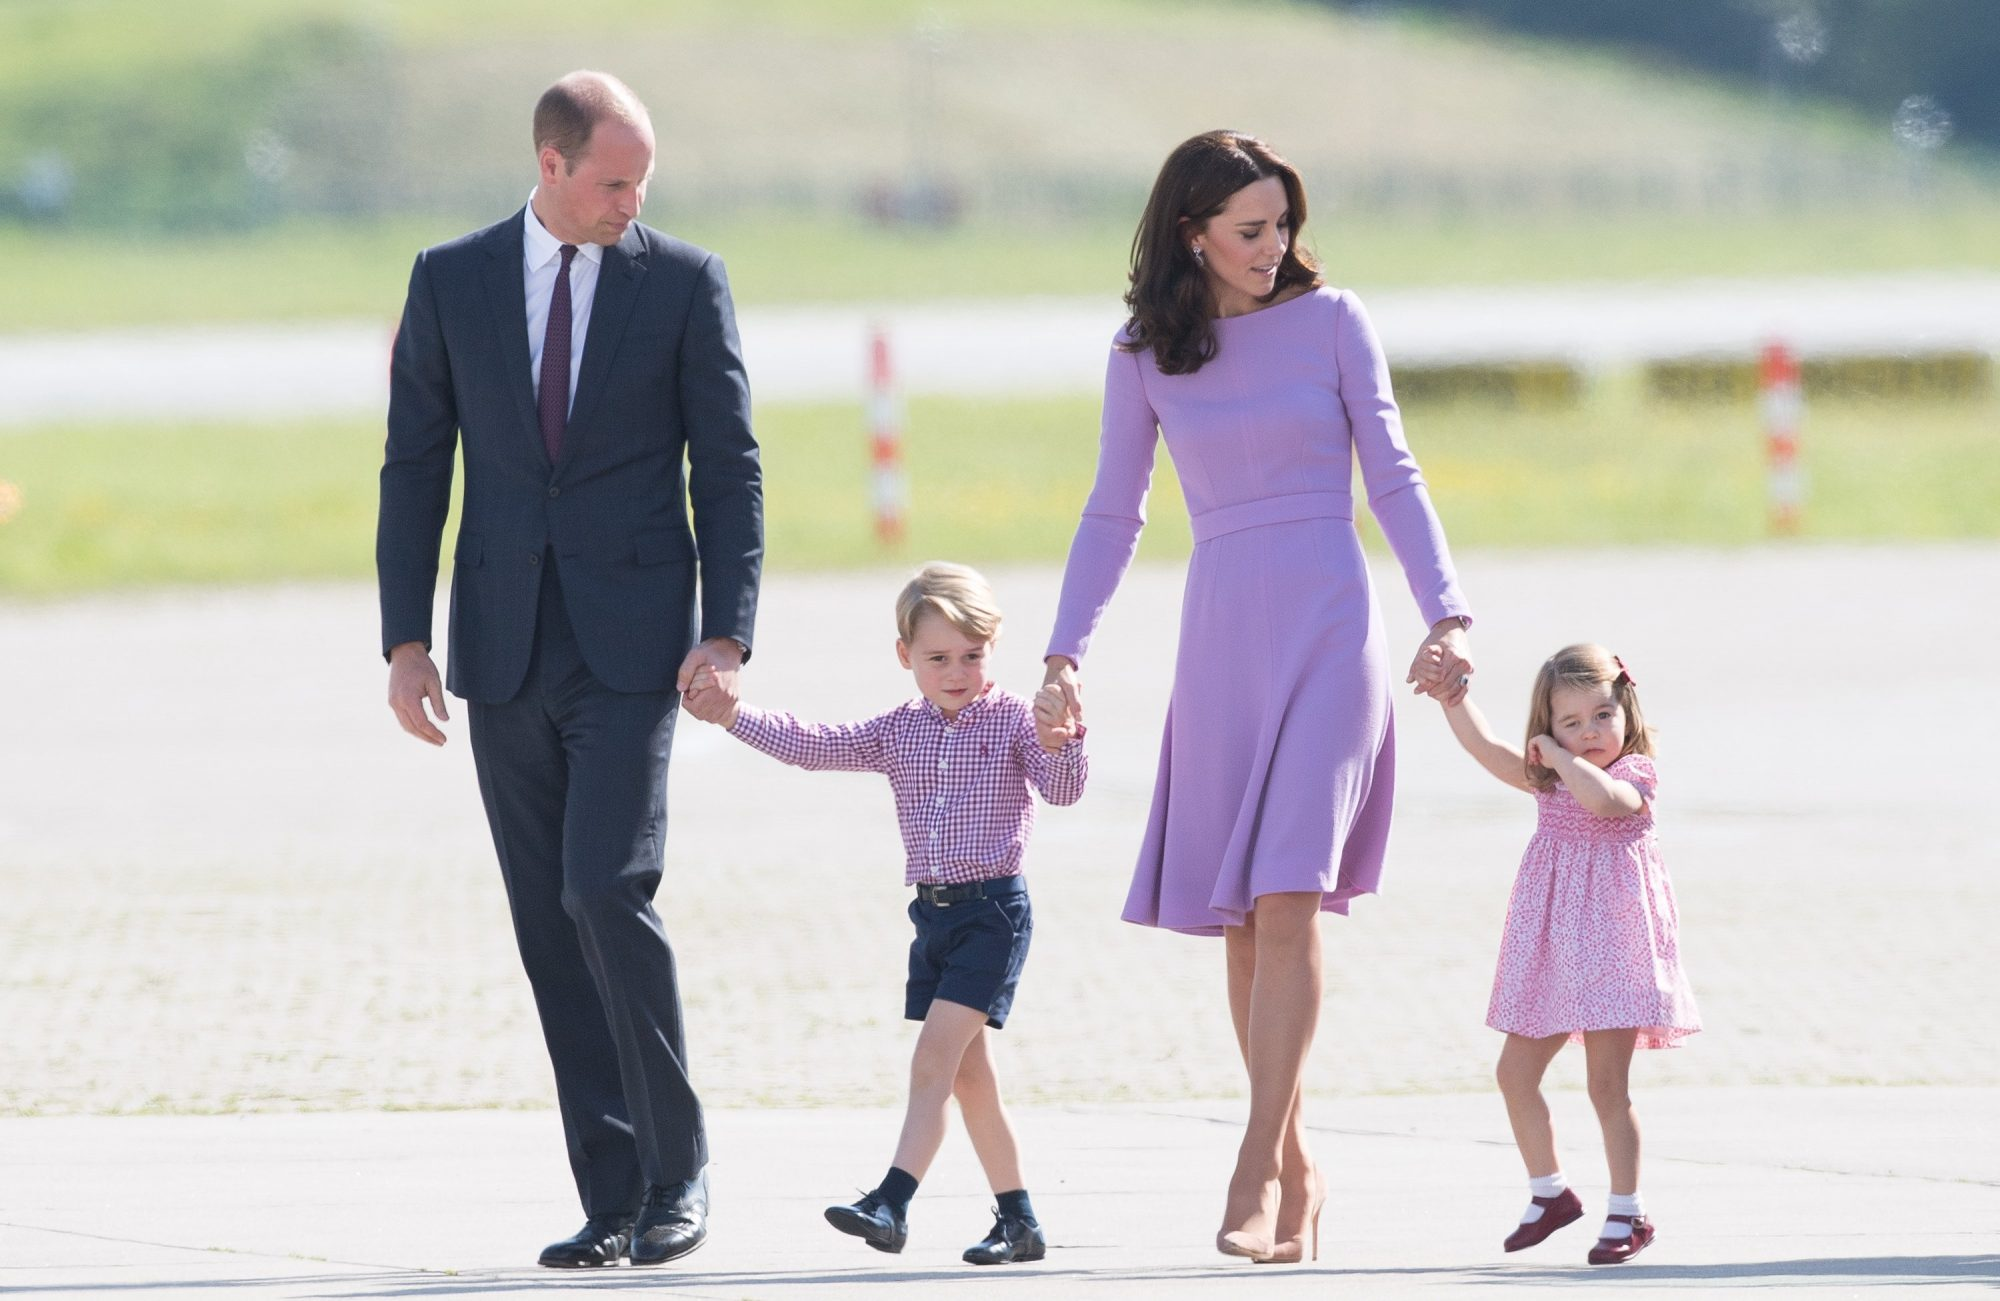 Prince William, Duke of Cambridge, Prince George, Princess Charlotte of Cambridge and Catherine, Duchess of Cambridge view helicopter models H145 and H135 before departing from Hamburg airport on the last day of their official visit to Poland and...